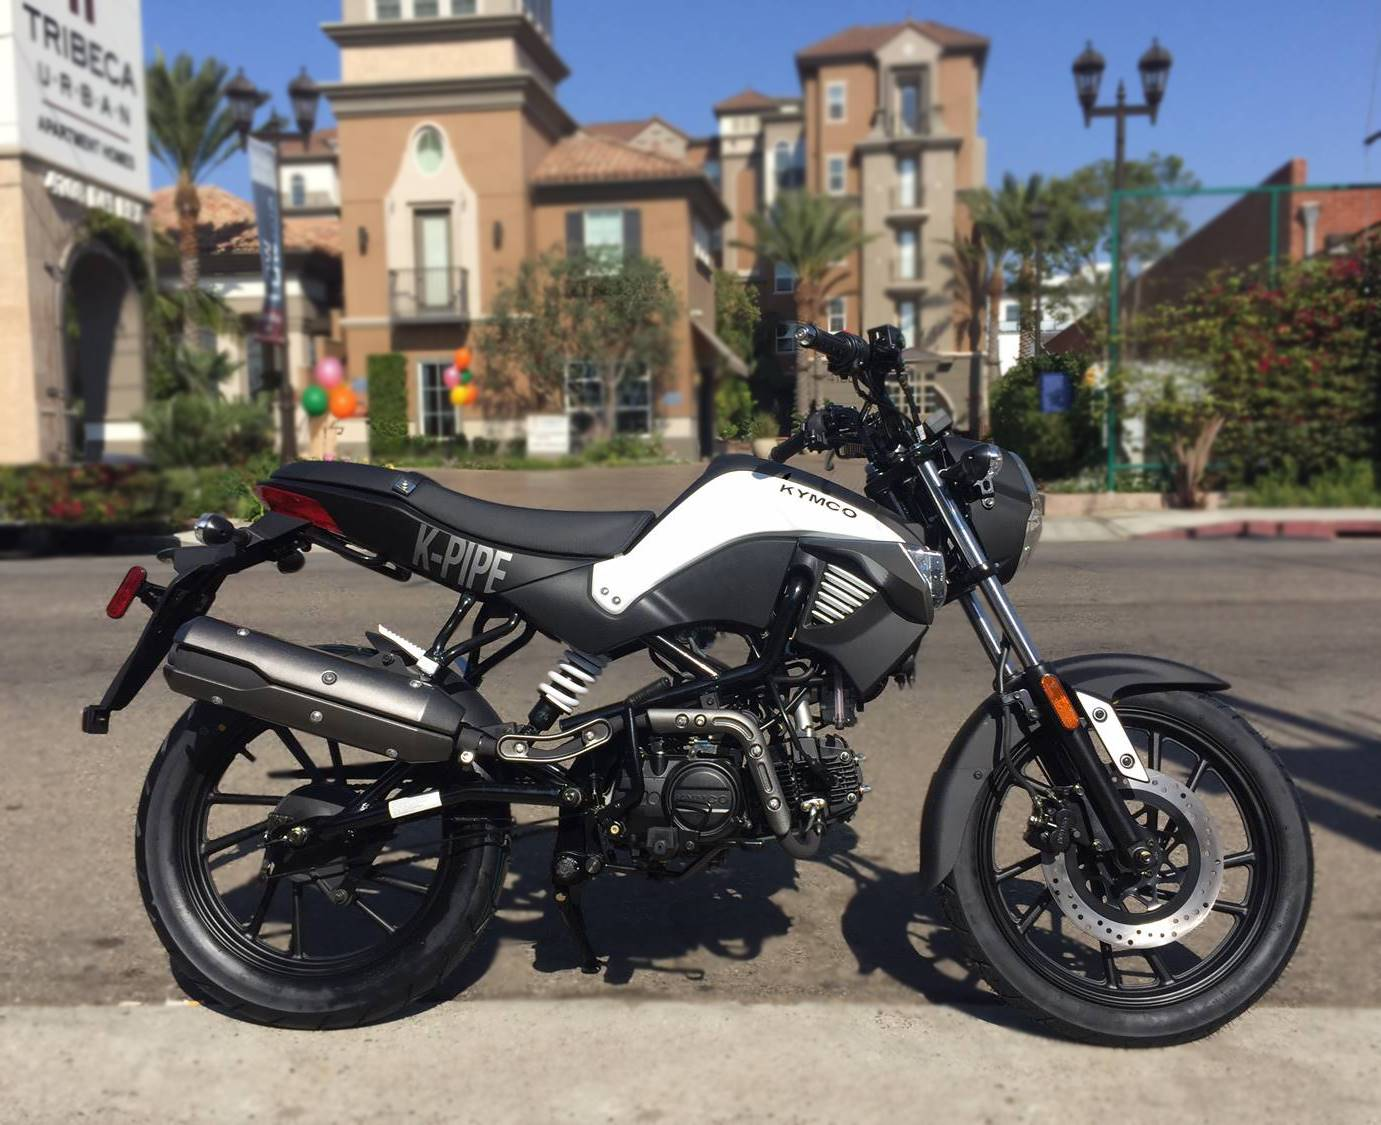 2017 KYMCO K-Pipe 125 for sale 2791